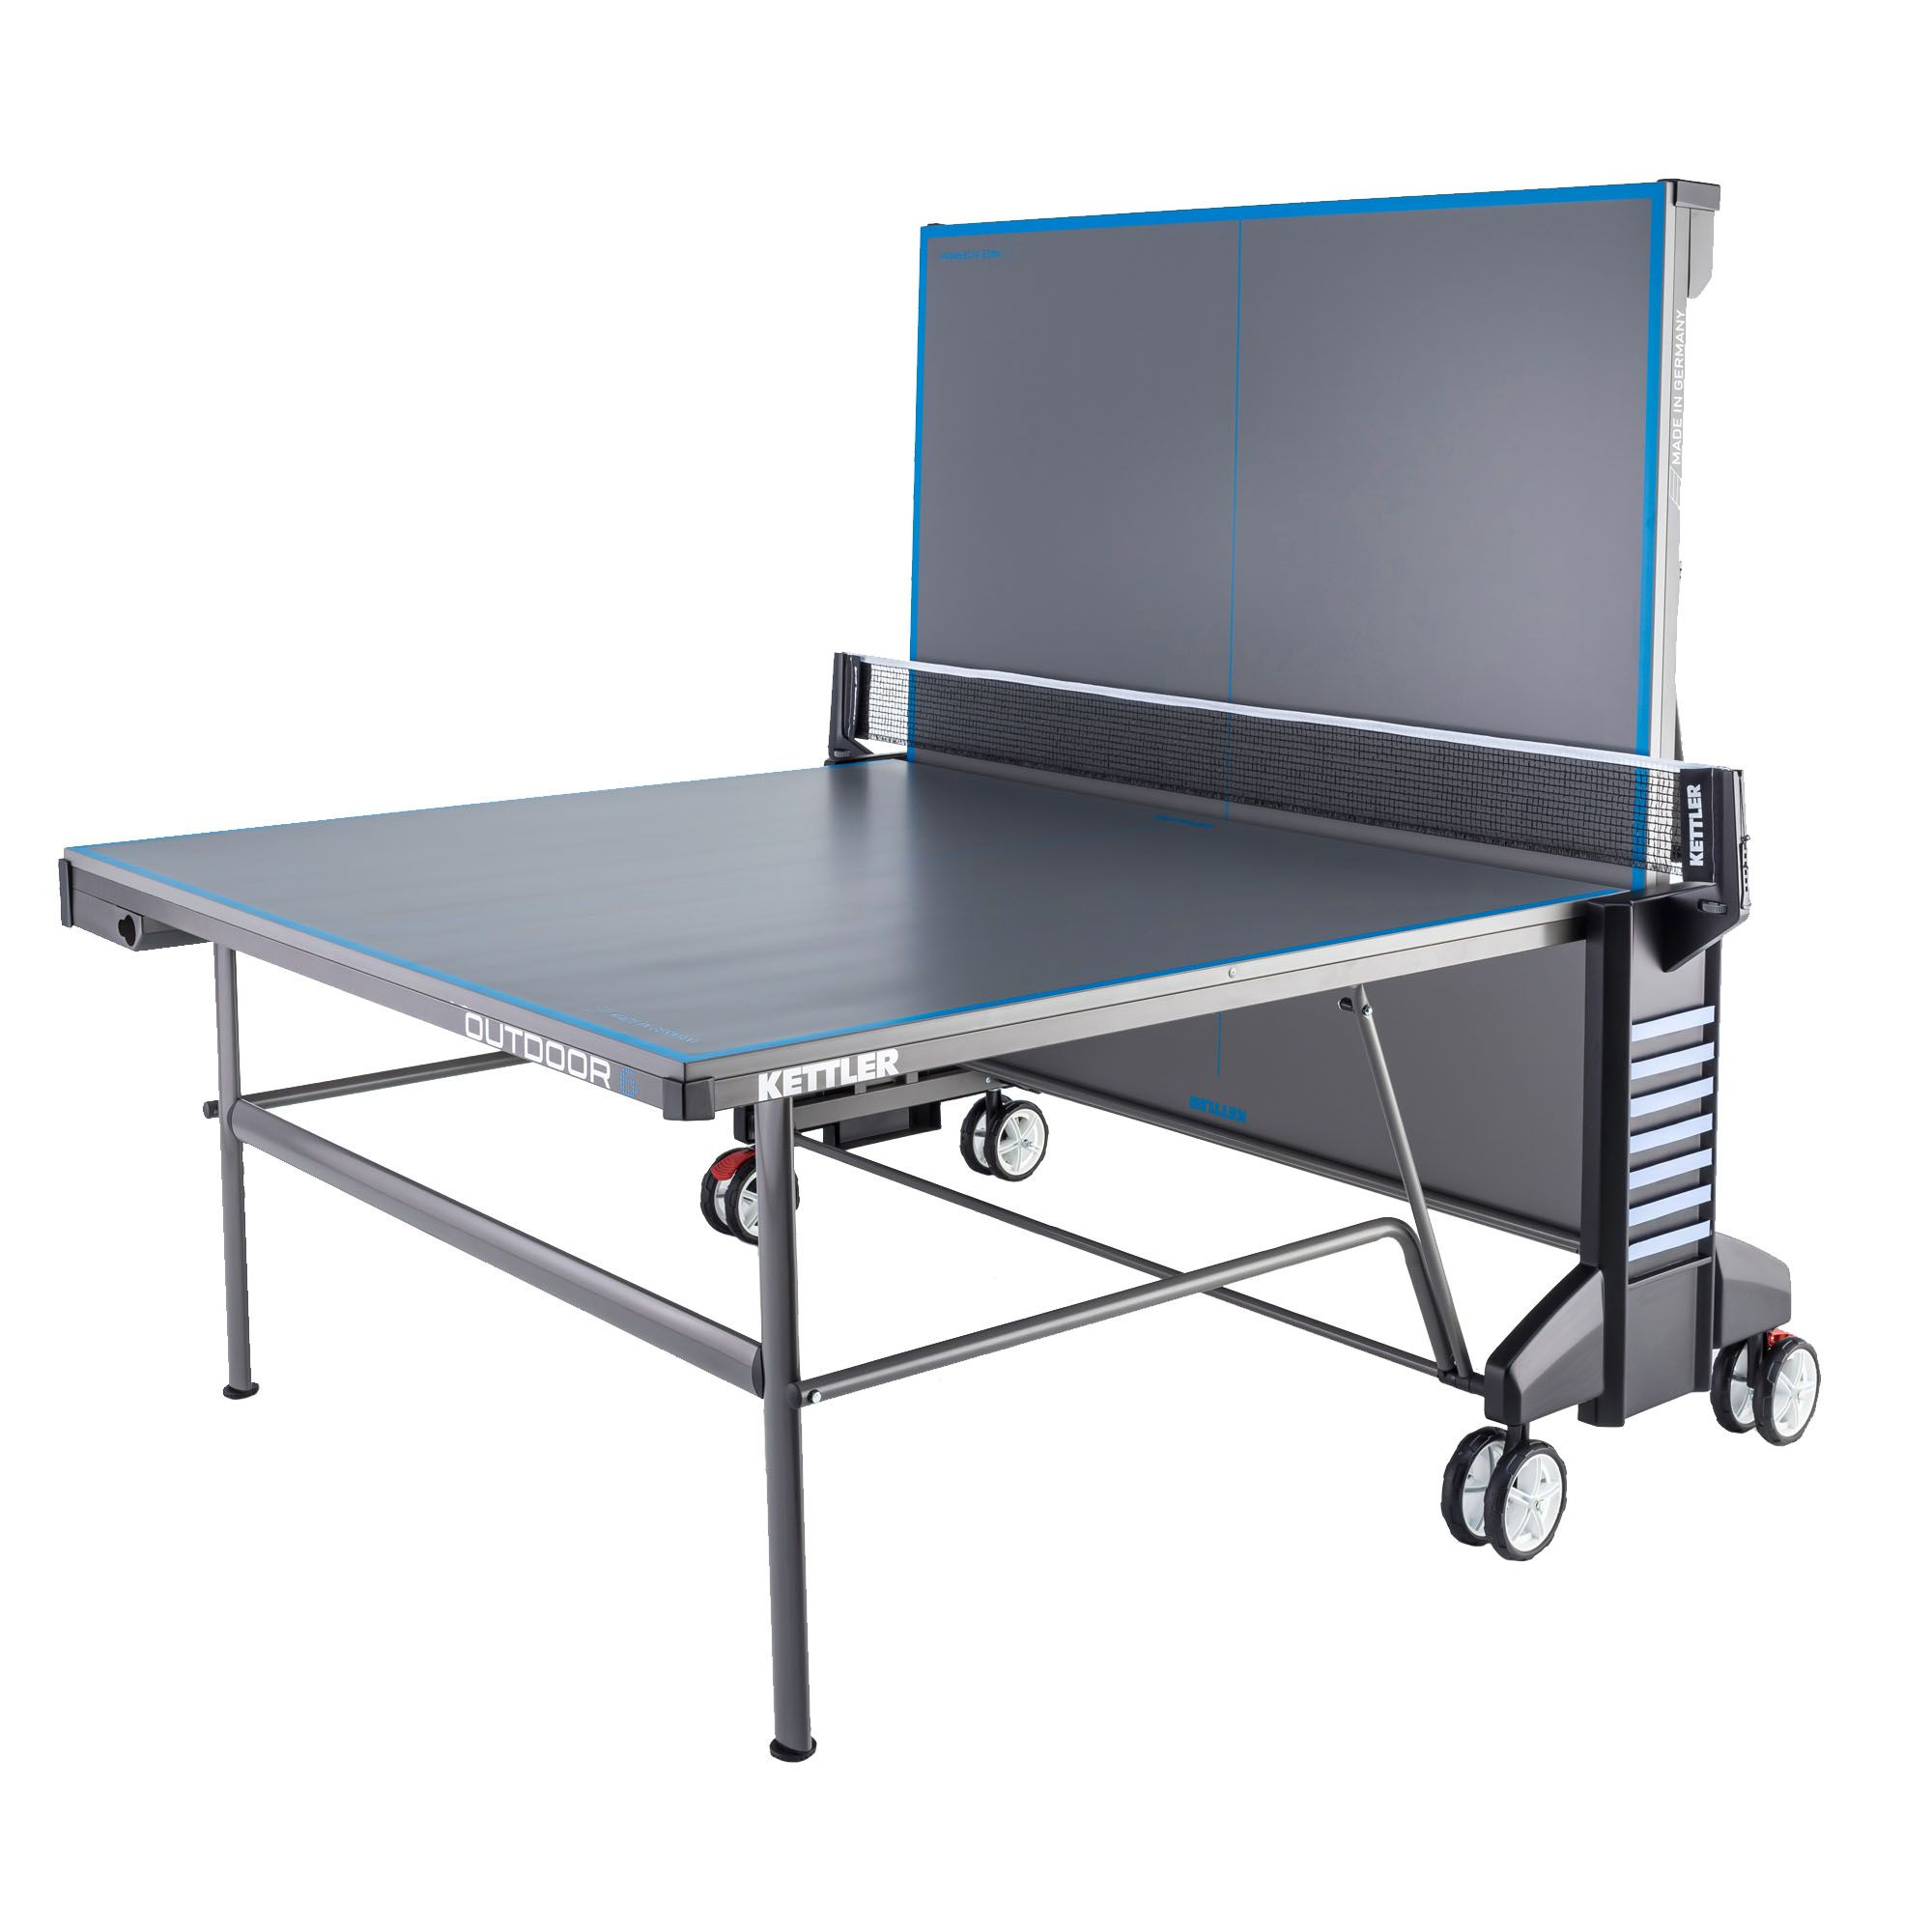 Kettler classic outdoor 6 table tennis table for Table 6 table